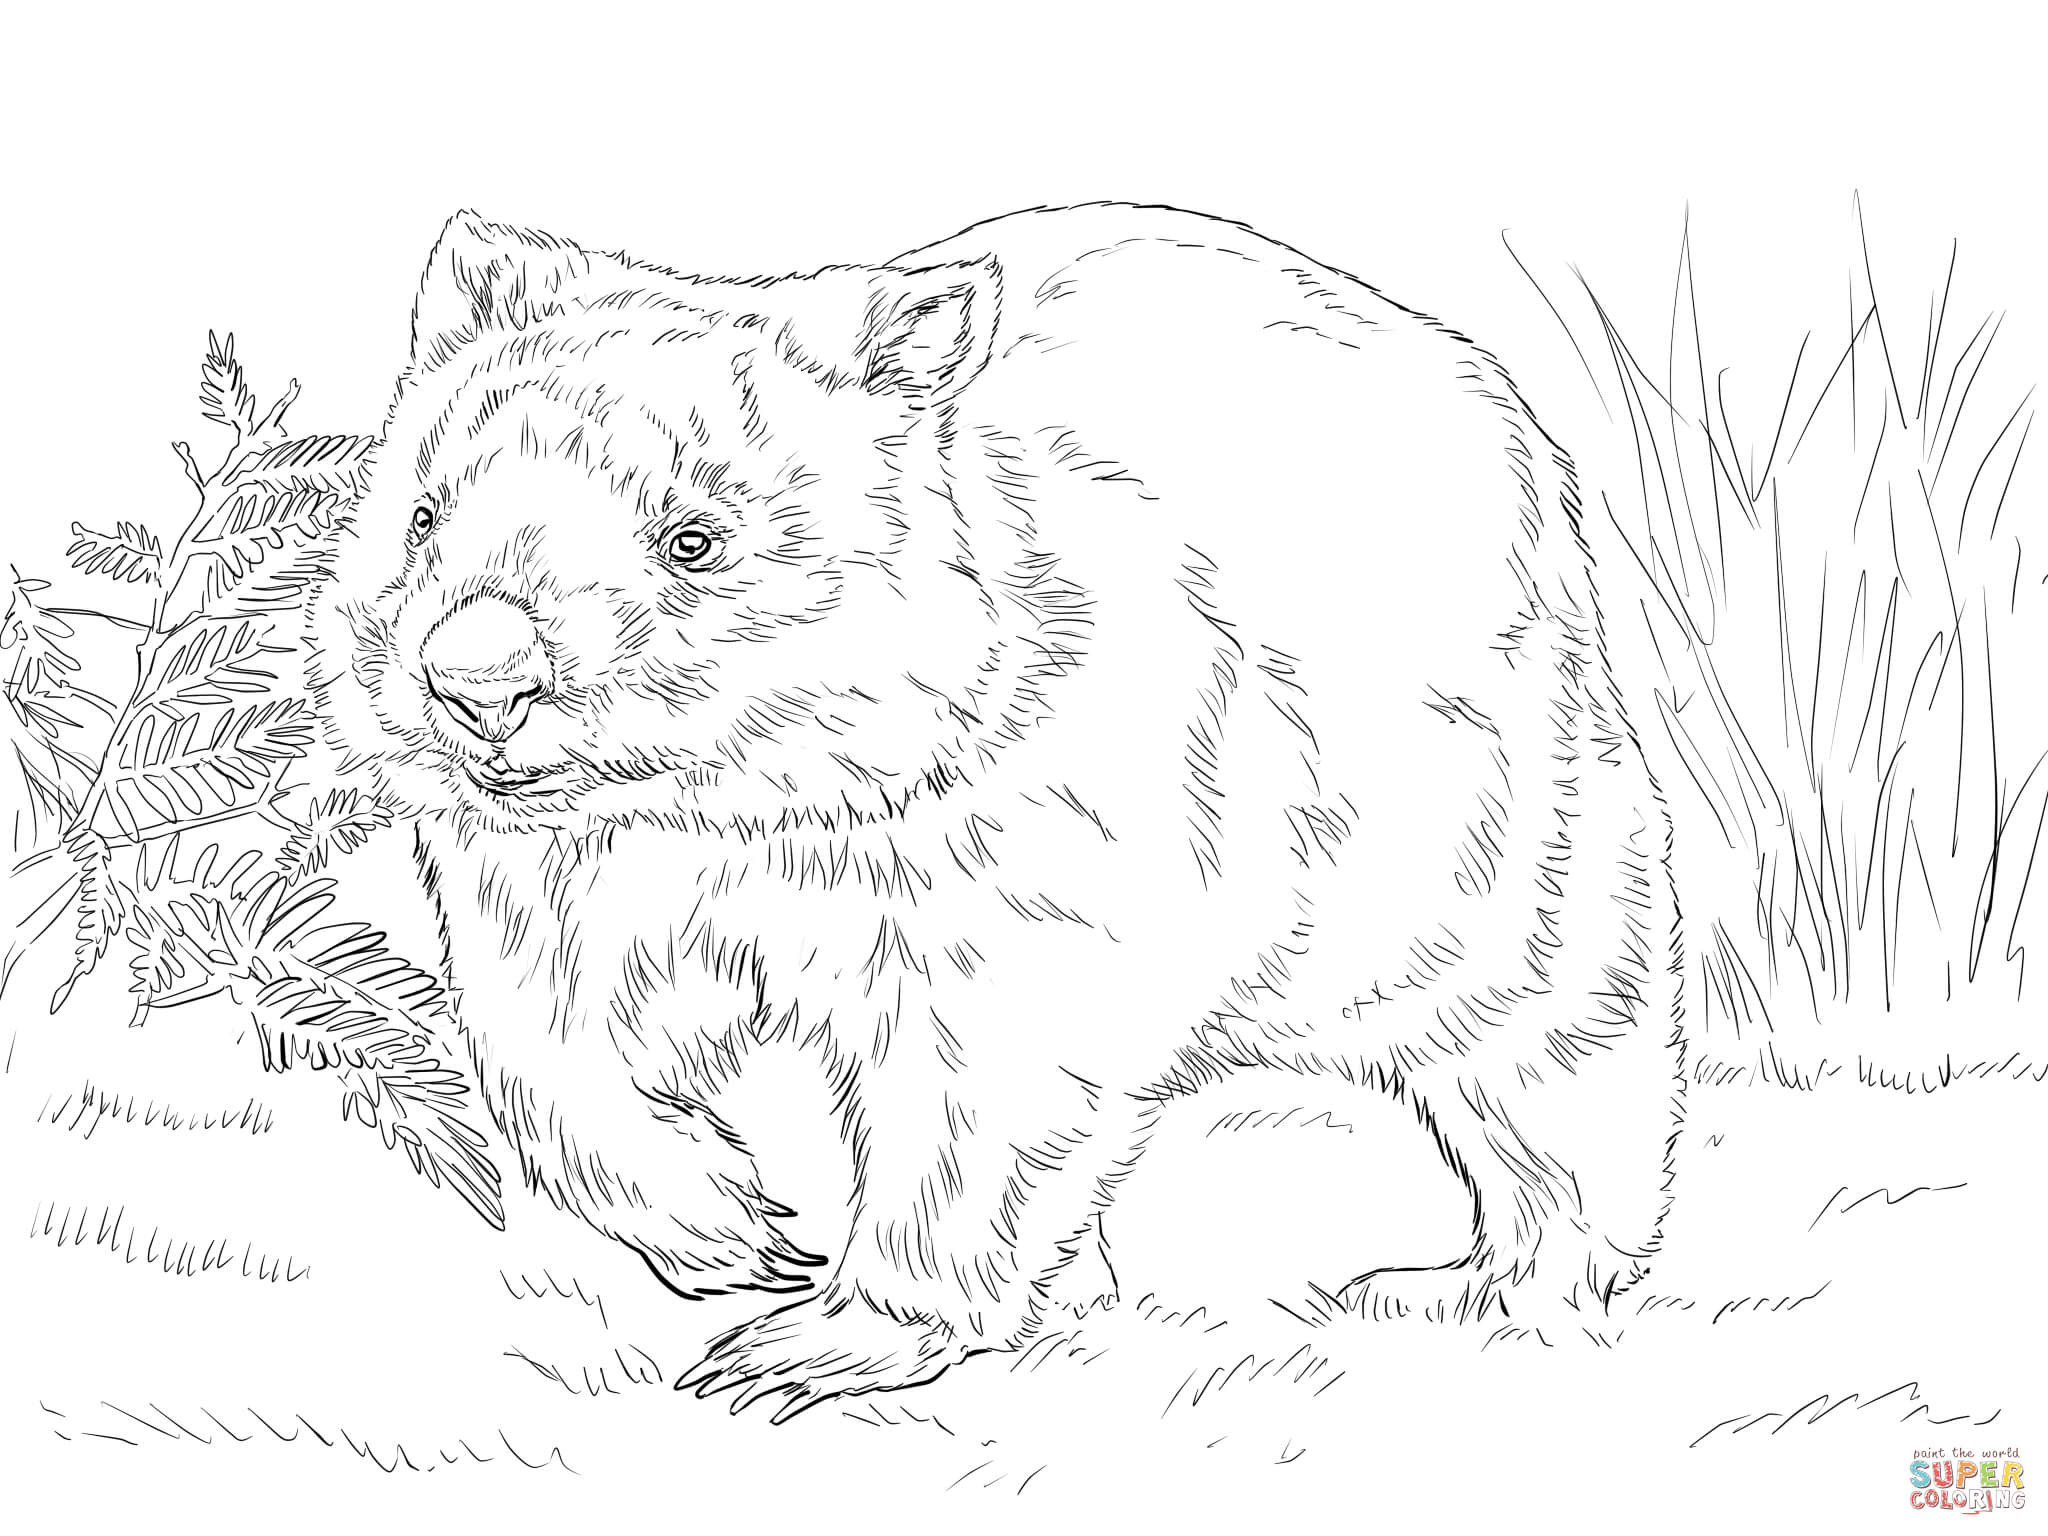 wombat colouring baby wombat coloring page free printable coloring pages wombat colouring